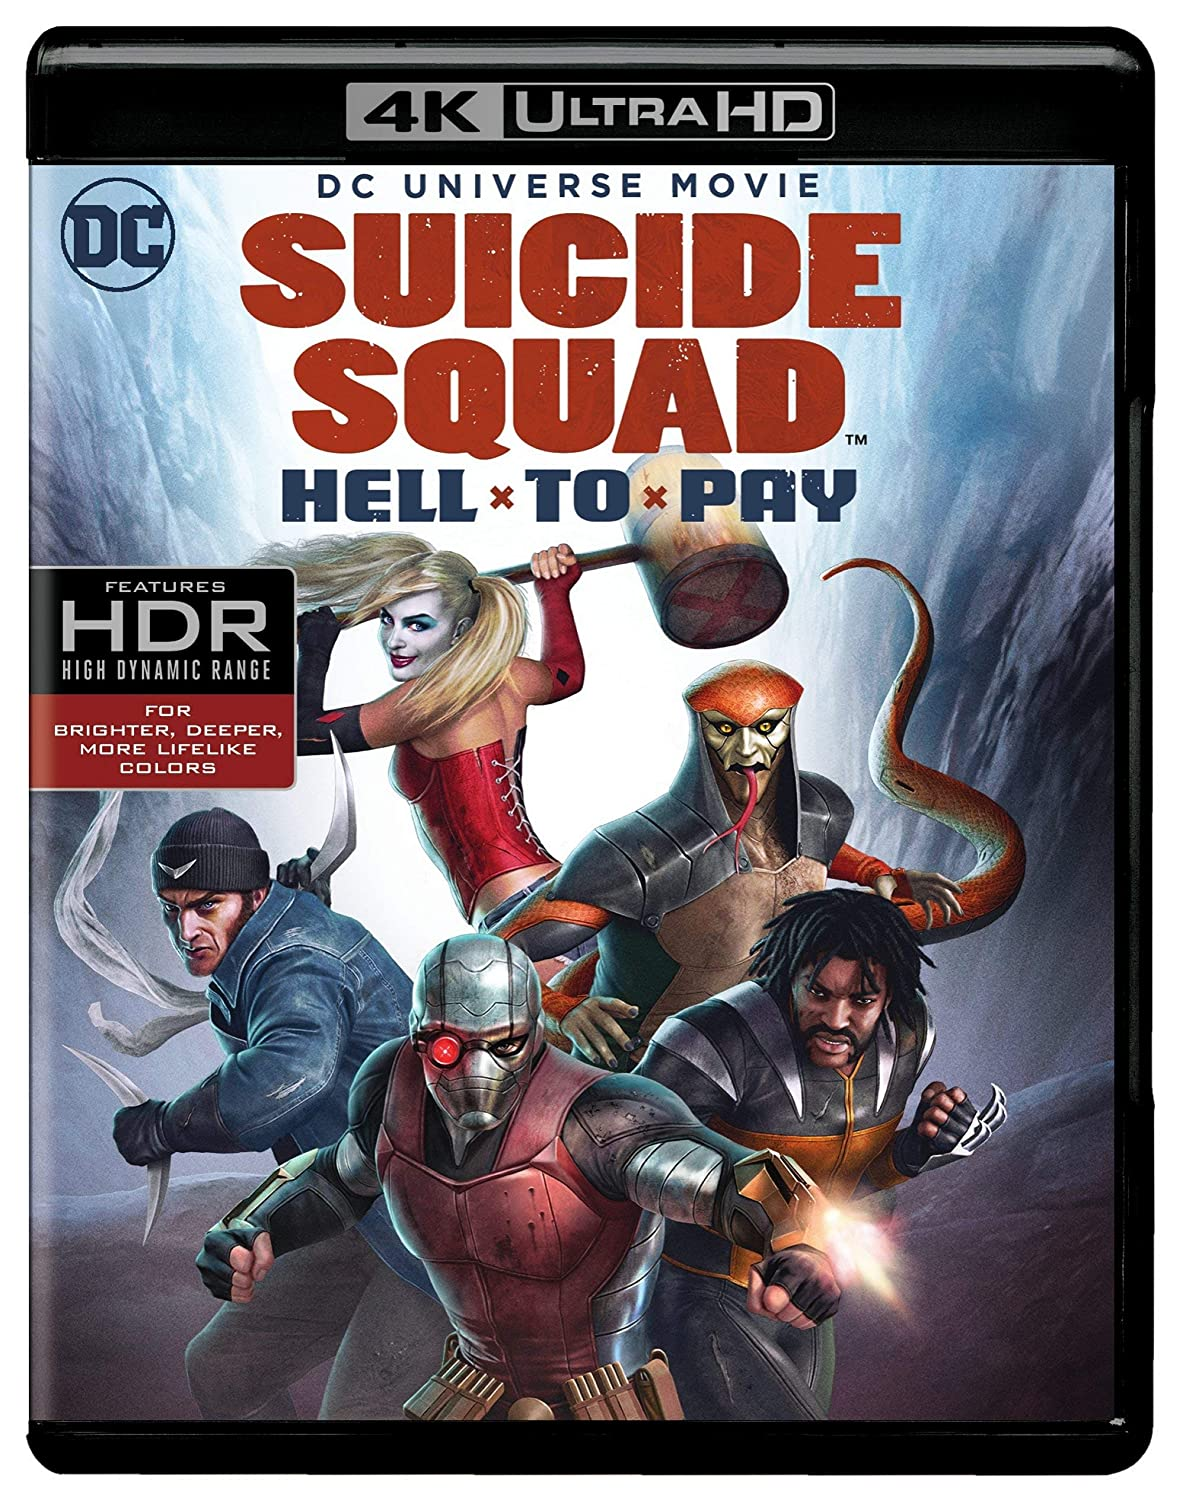 Amazon Com Dcu Suicide Squad Hell To Pay 4k Uhd Blu Ray Alan Burnett Sam Liu James Tucker Sam Register Christian Slater Vanessa Williams Billy Brown Kristen Bauer Van Straten Gideon Emery Tara Strong Liam Mcintyre